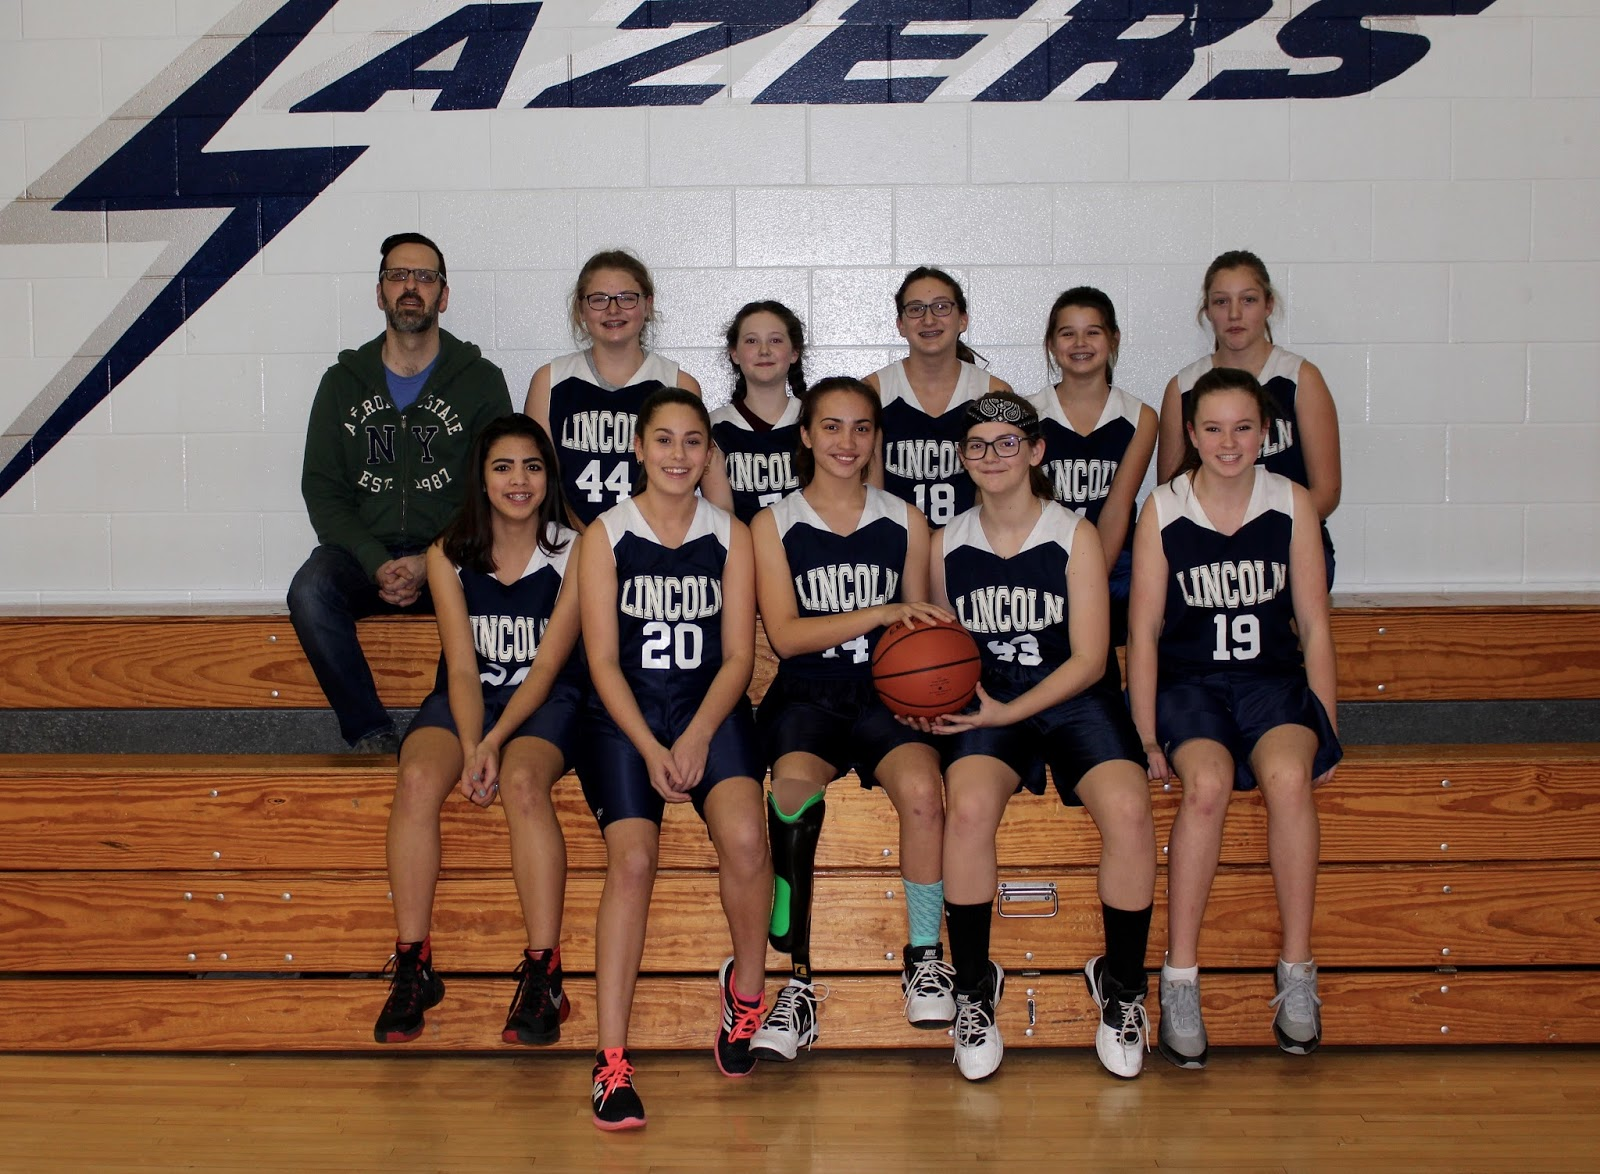 Cool girls basketball team pictures